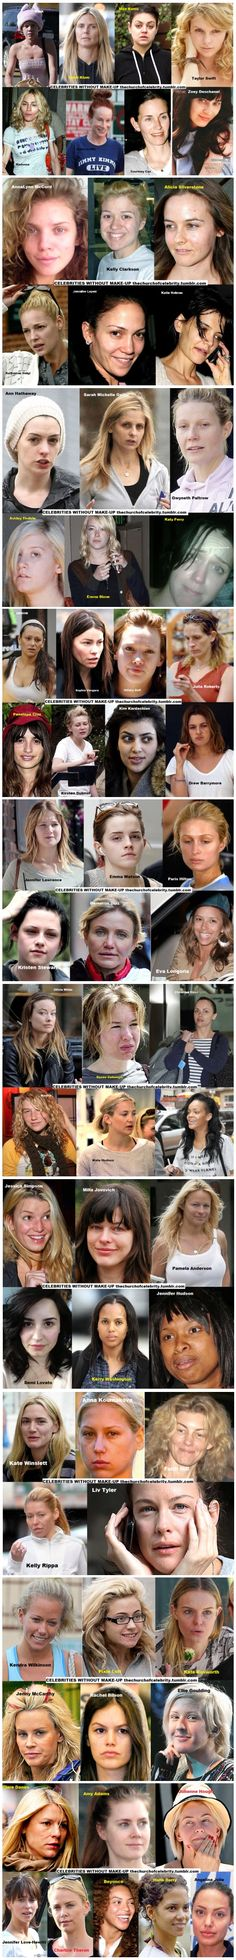 Even actual celebrities don't look like celebrities without the expensive makeup and photoshop.